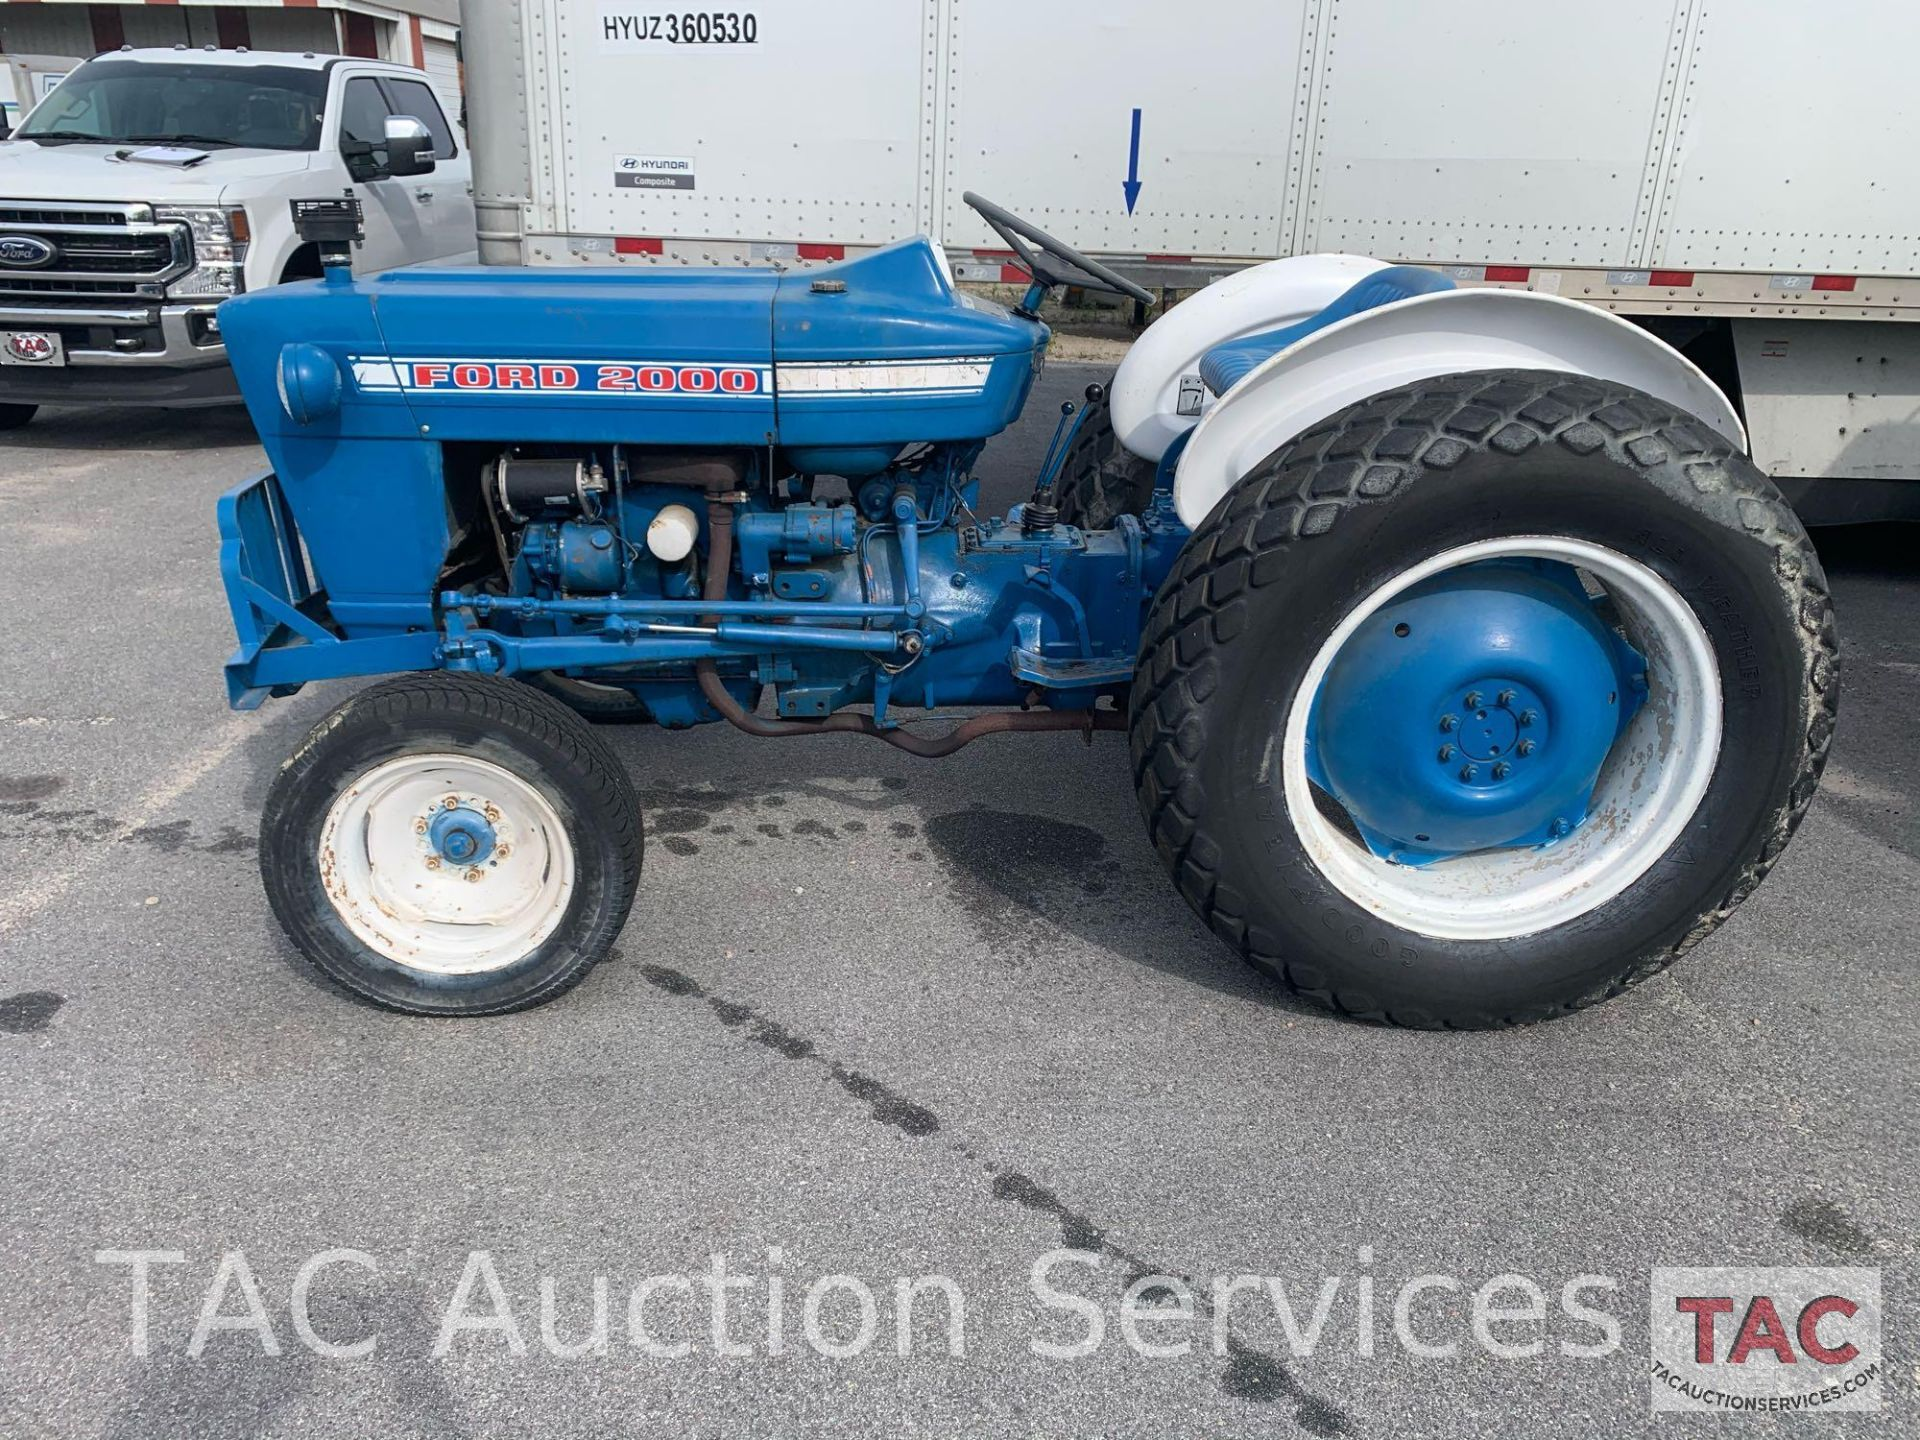 Ford 2000 Farm Tractor - Image 3 of 28